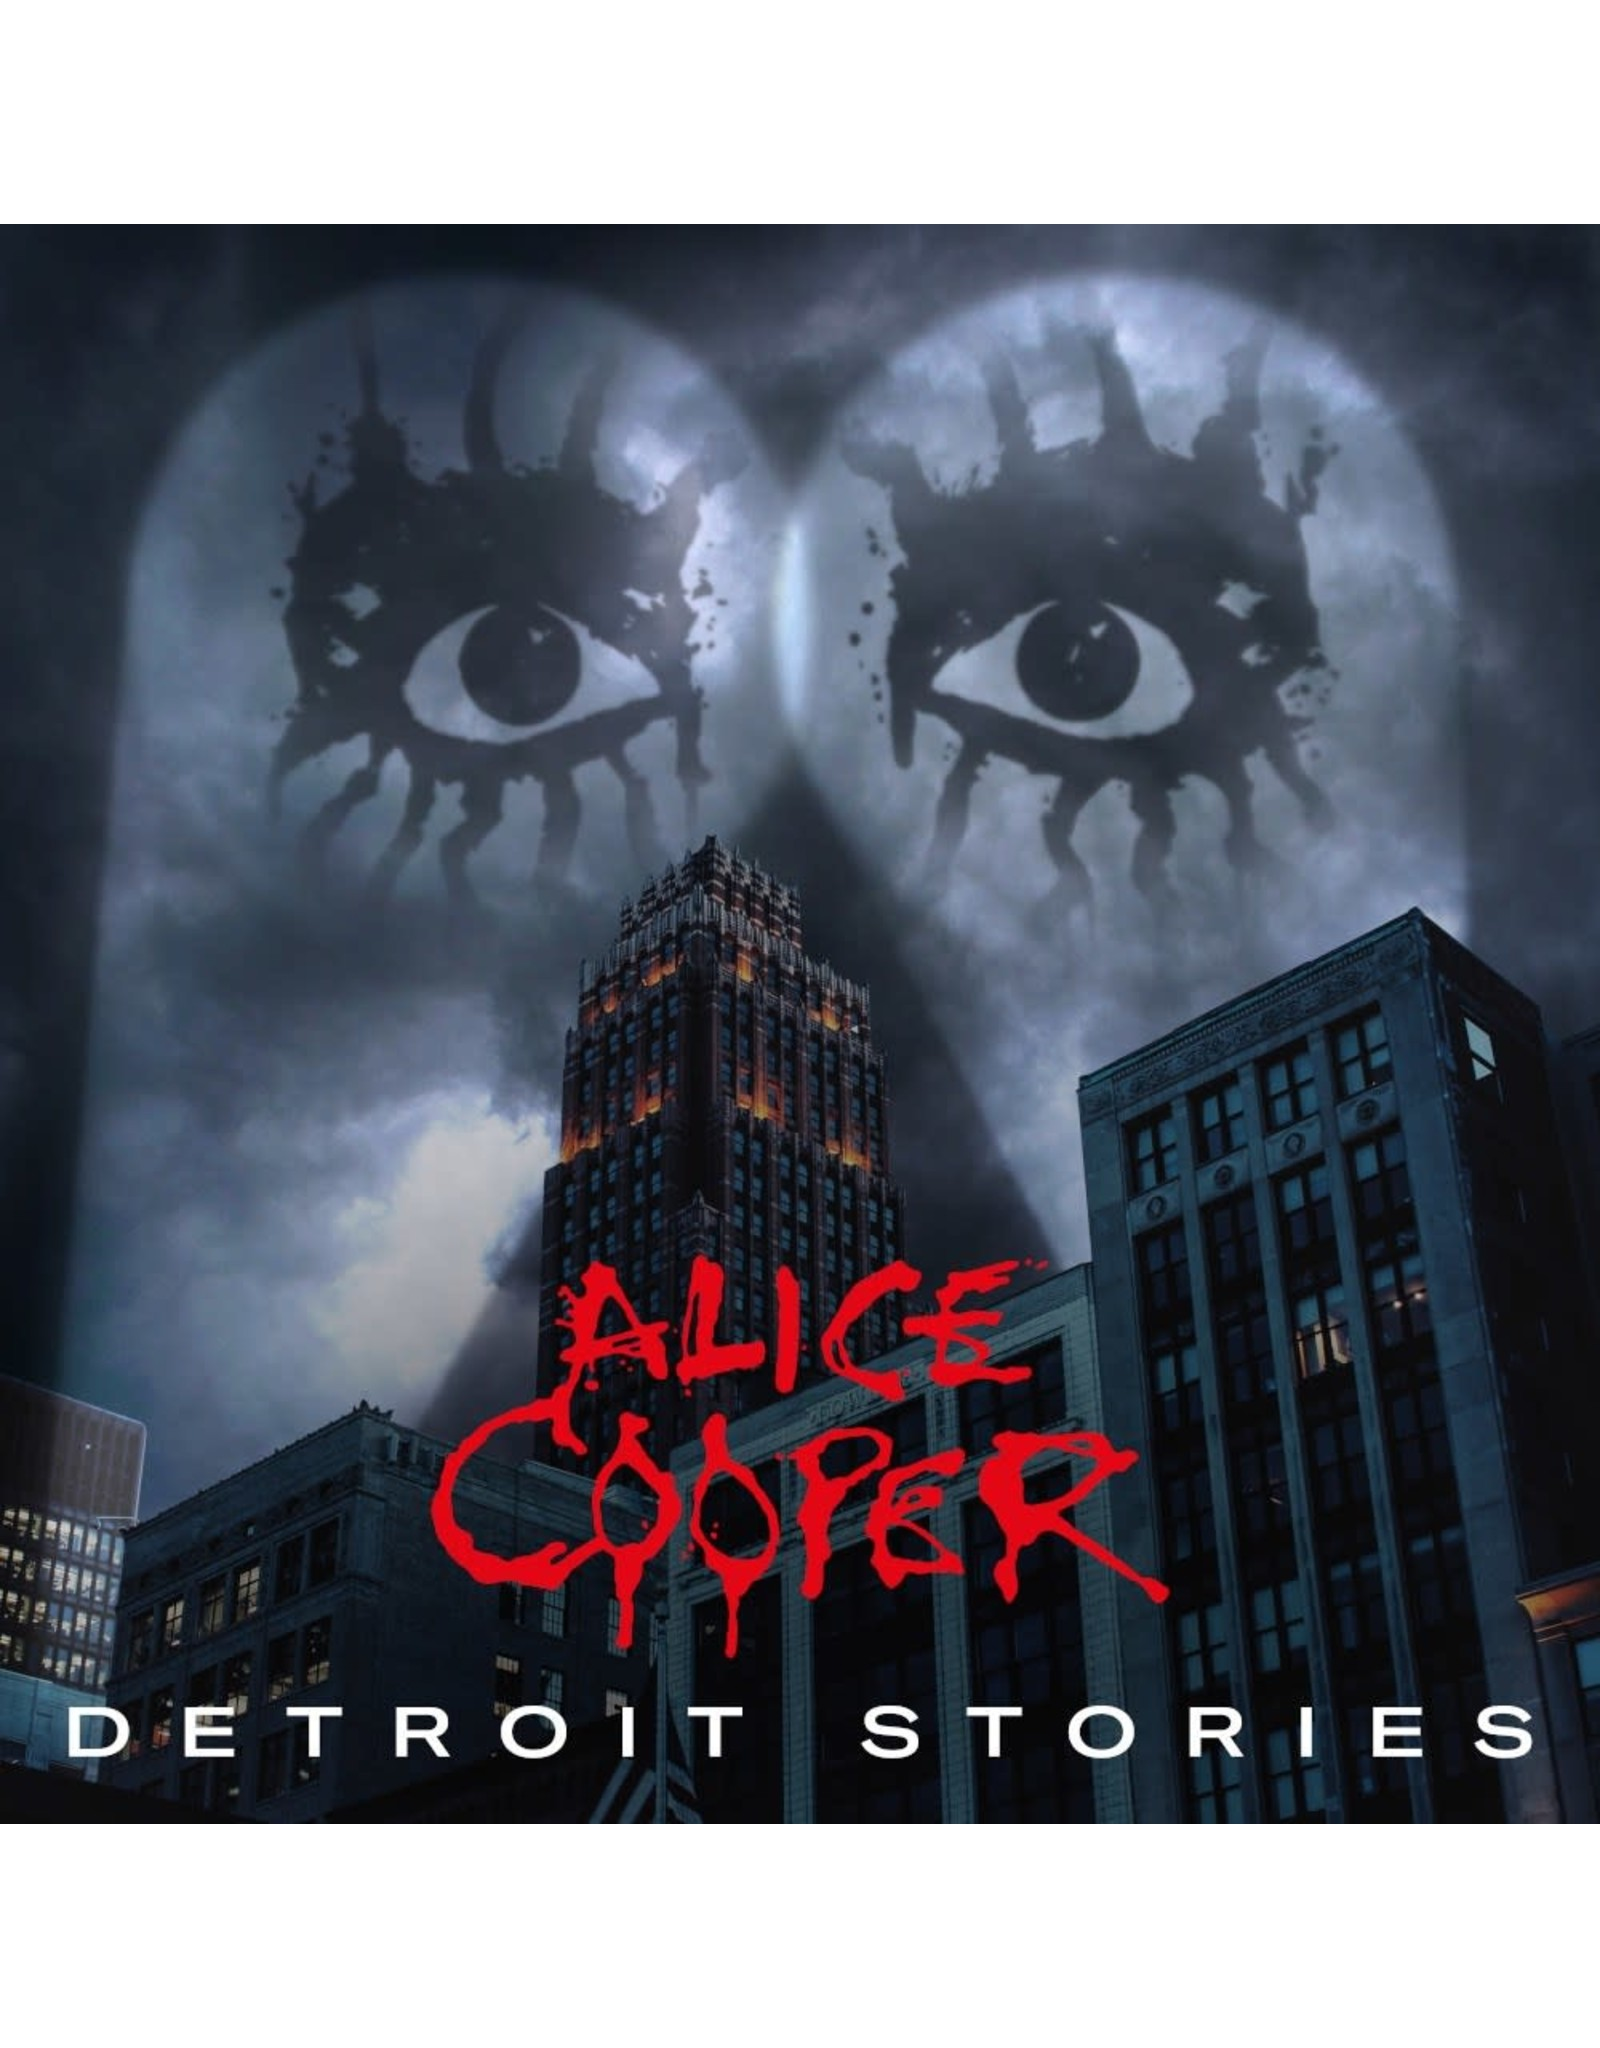 Cooper, Alice - Detroit Stories CD